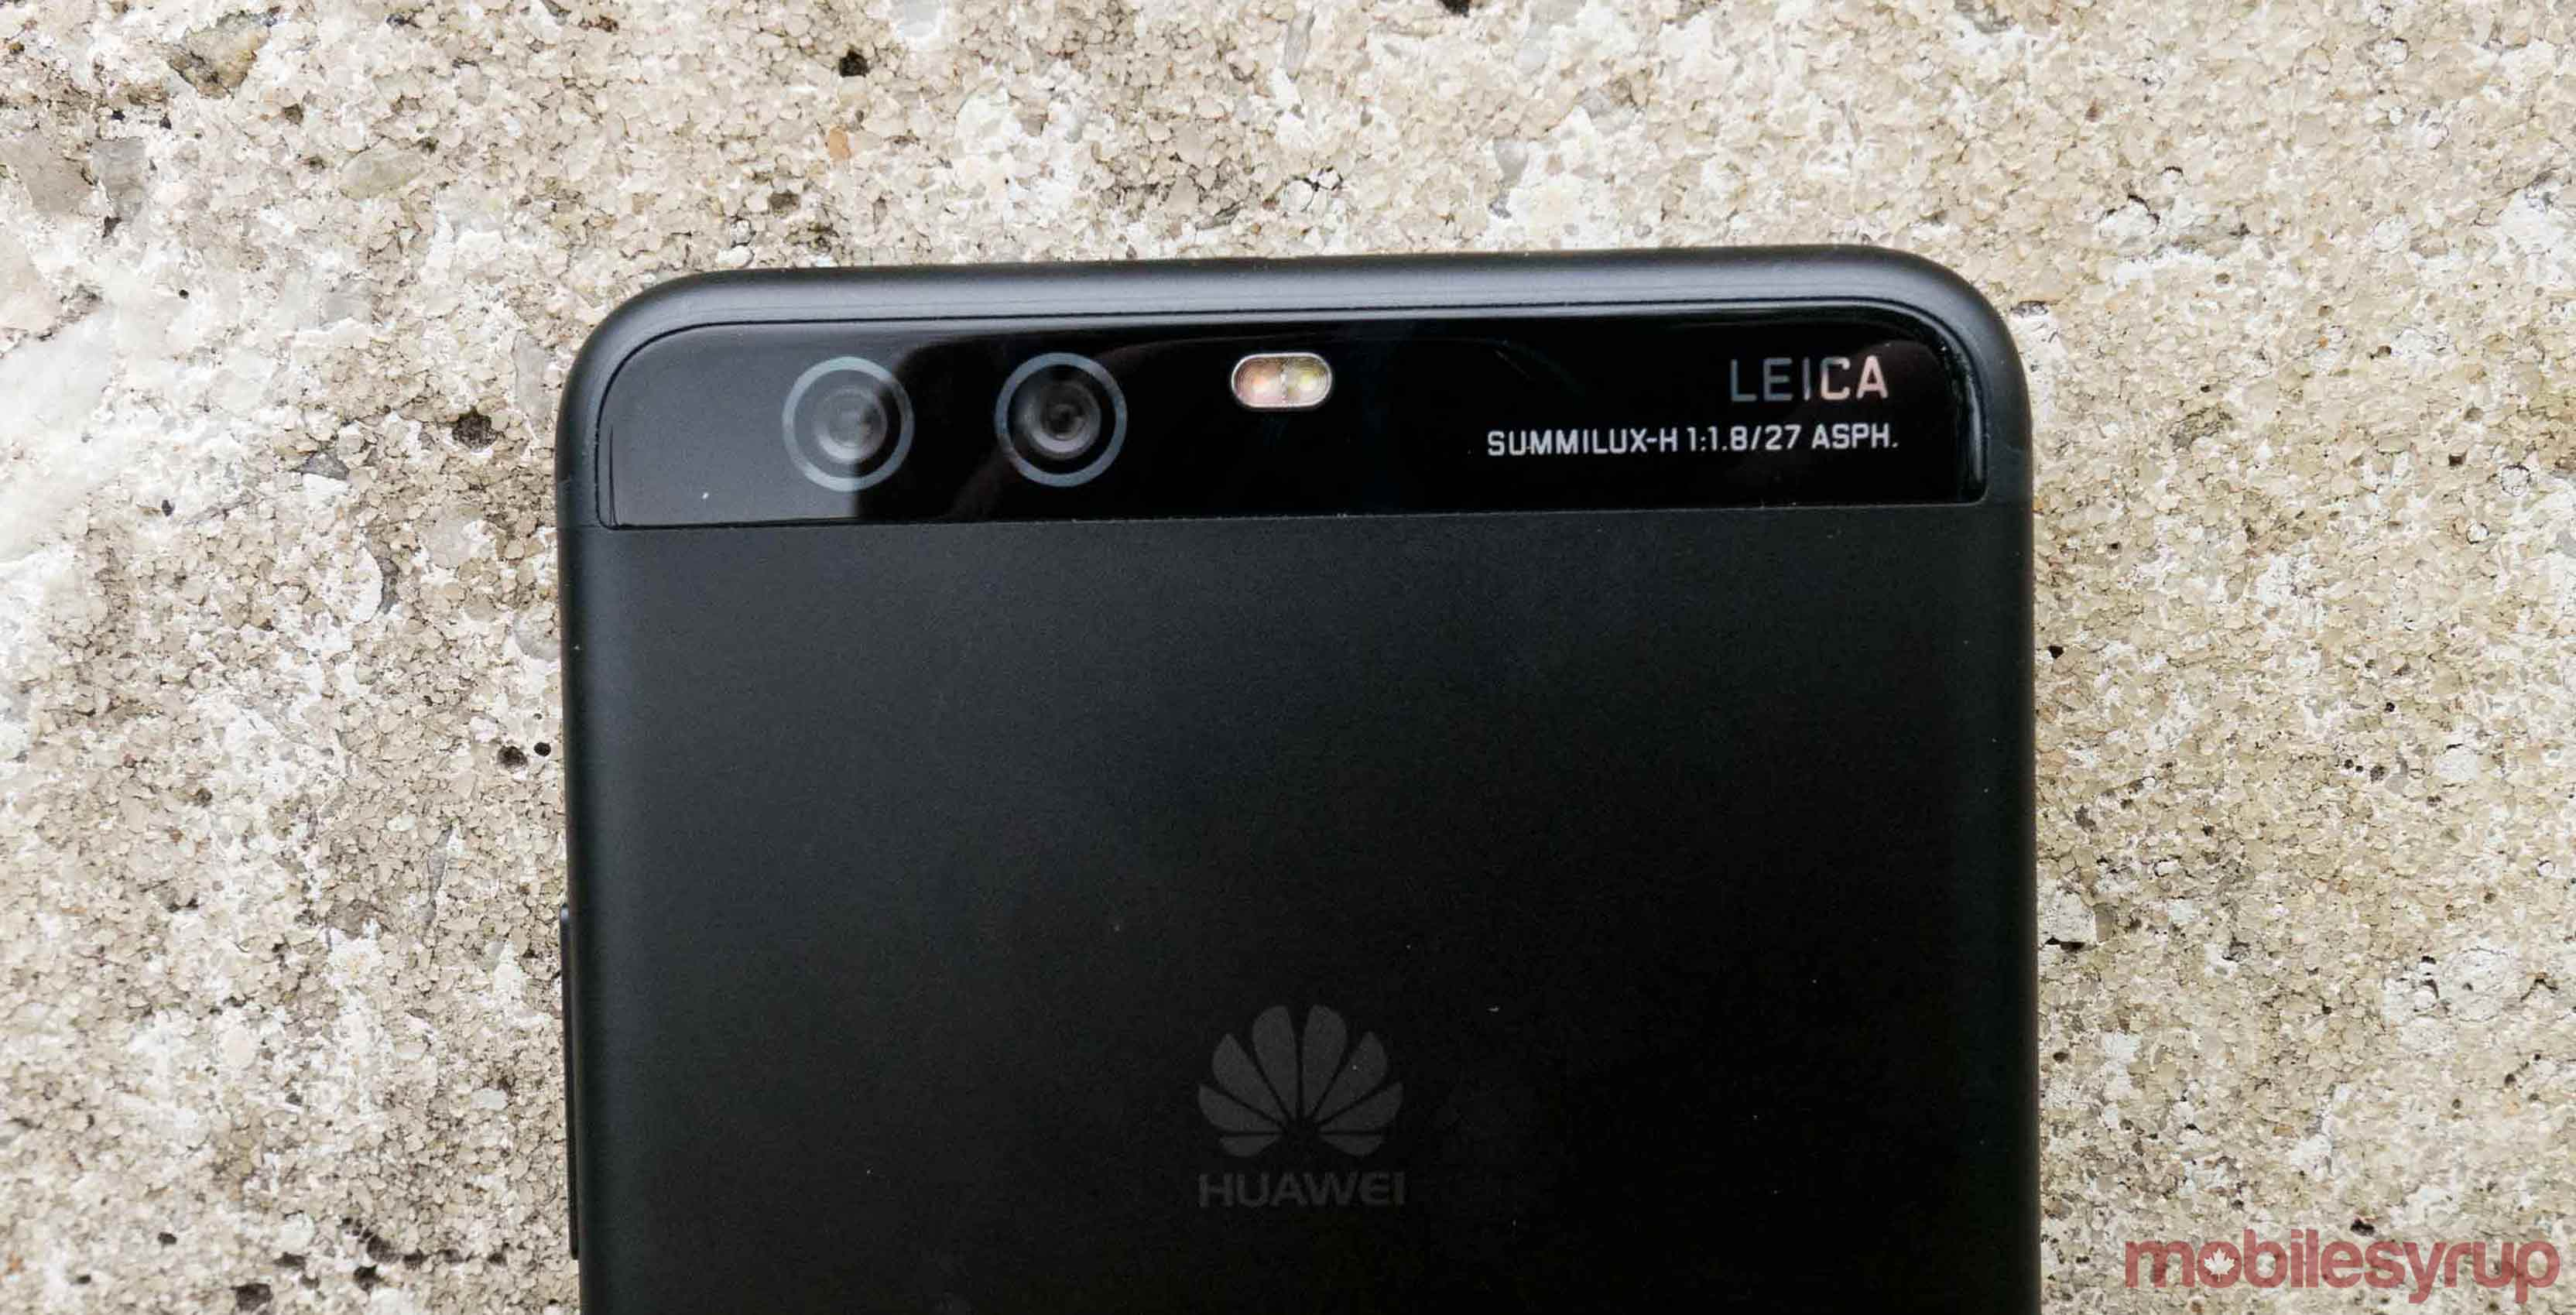 Image of the Huawei P10 Plus and its rear-facing camera array